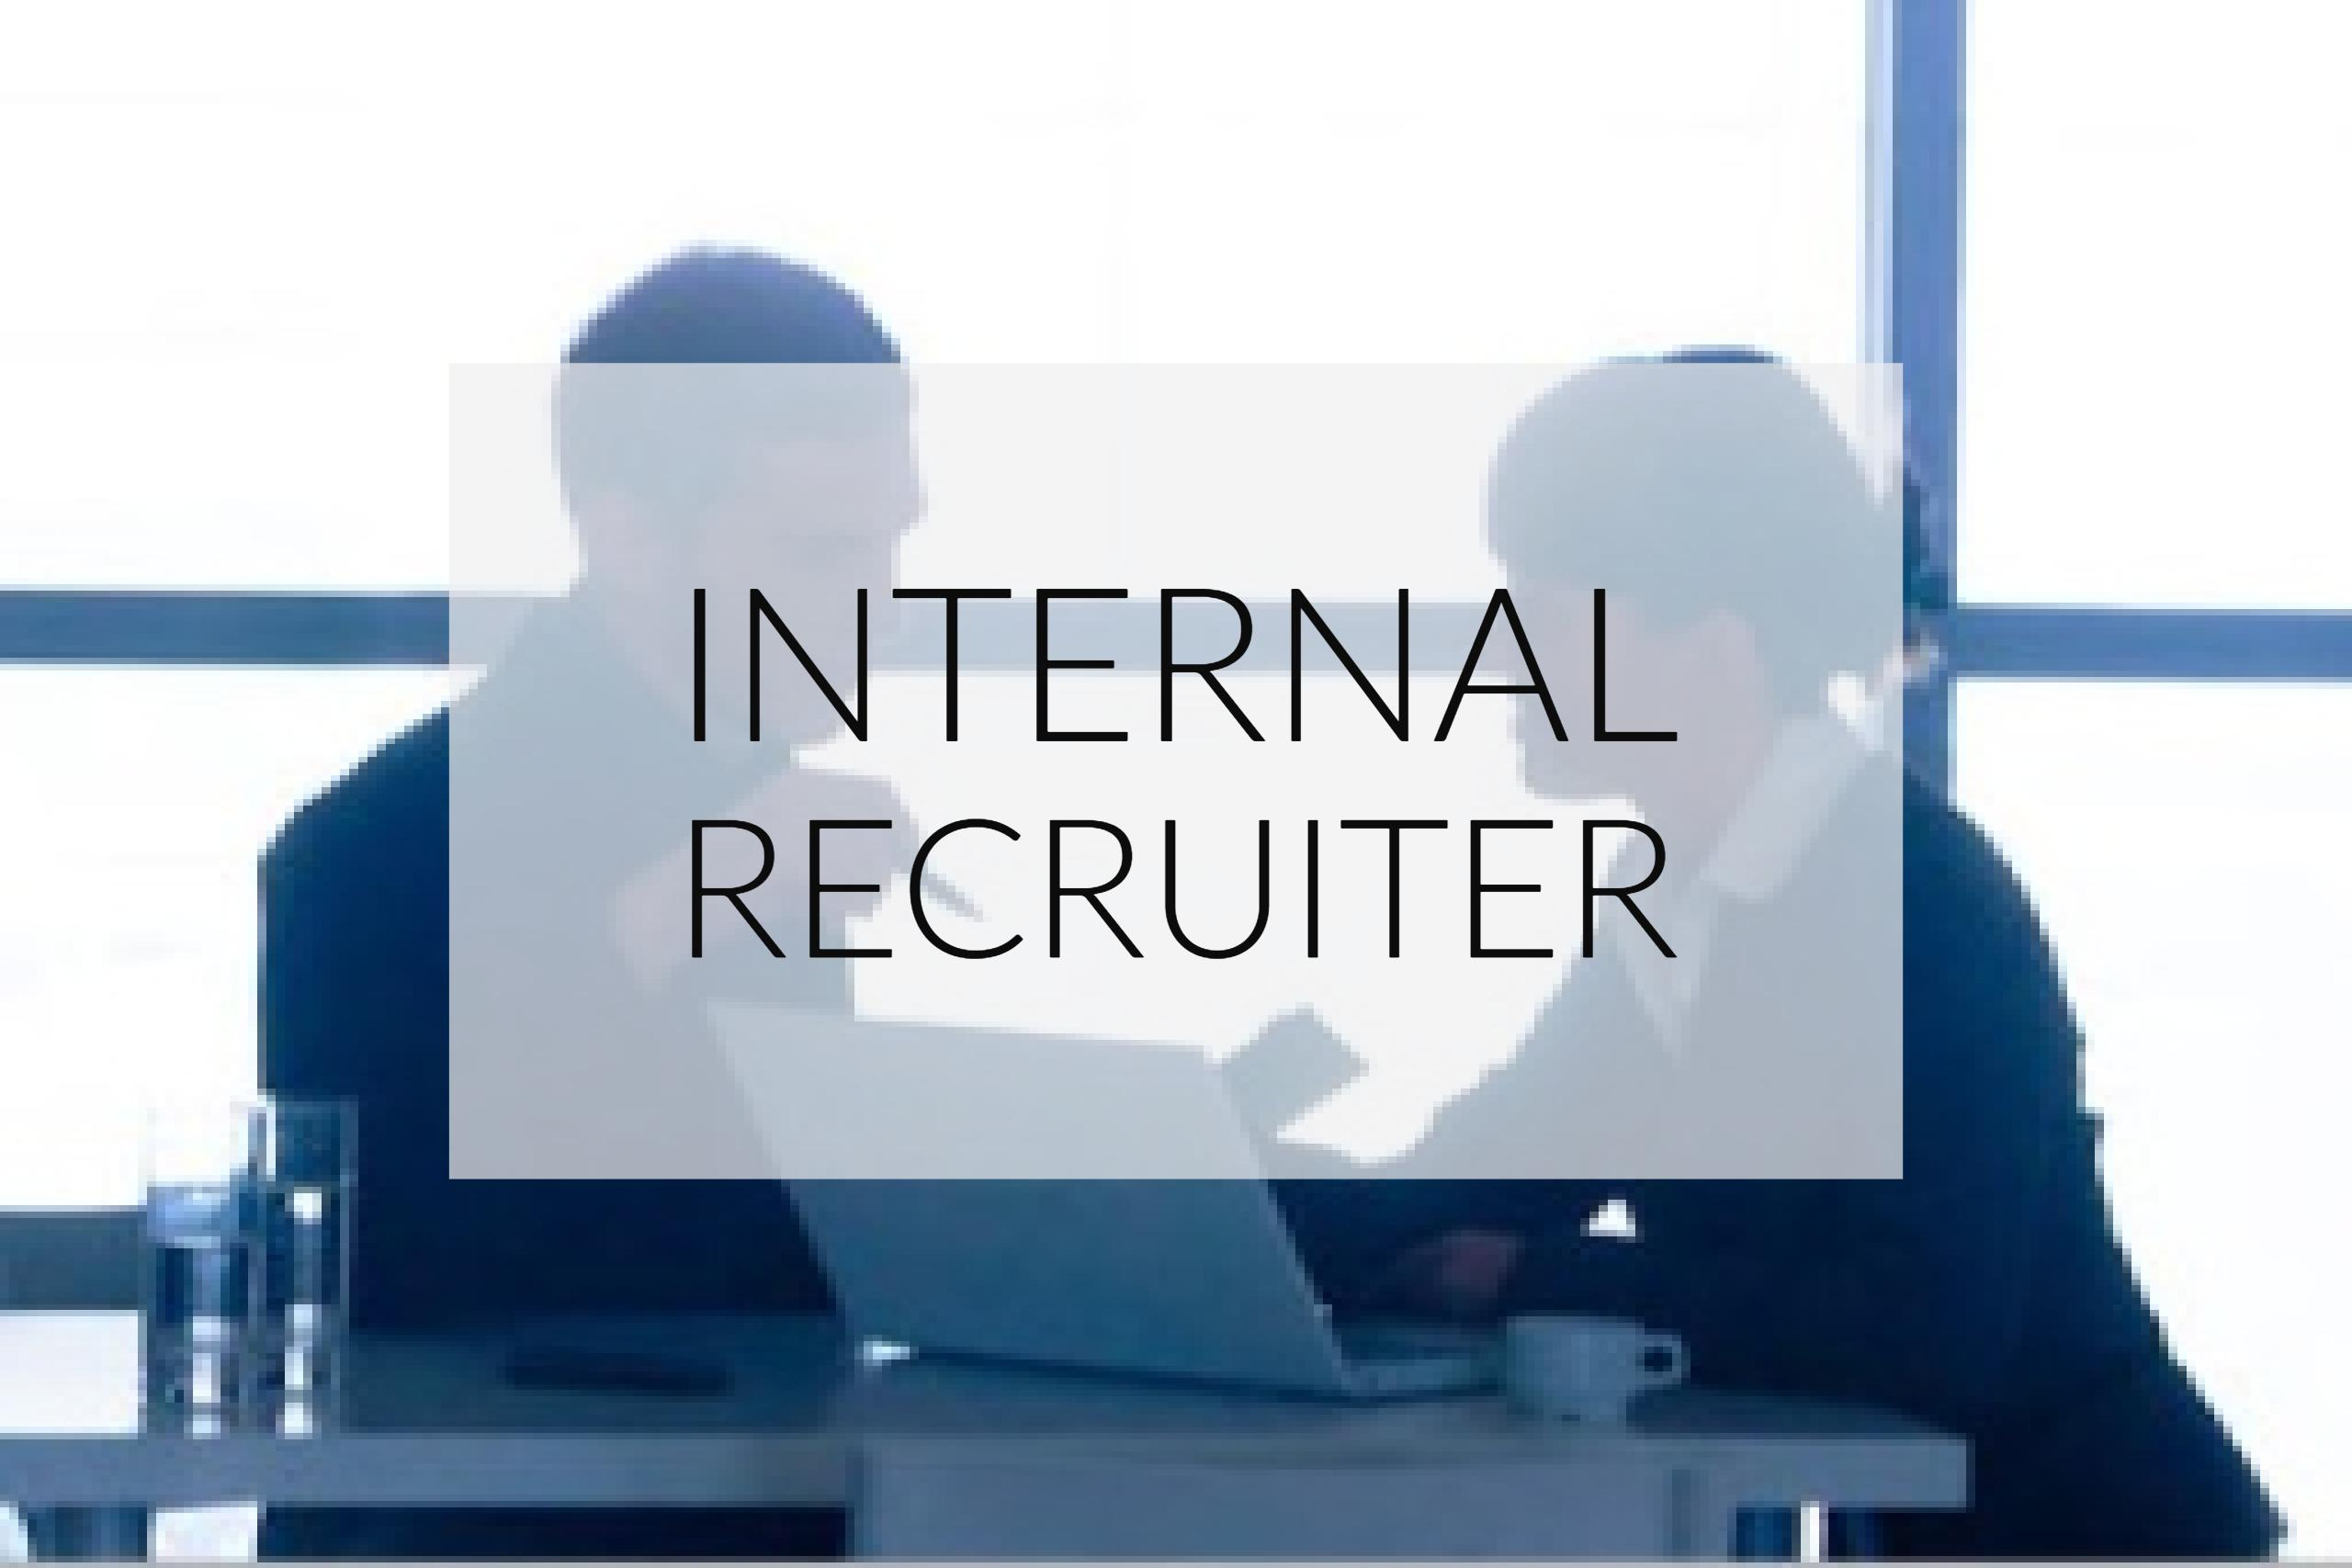 internal recruiter ignition global